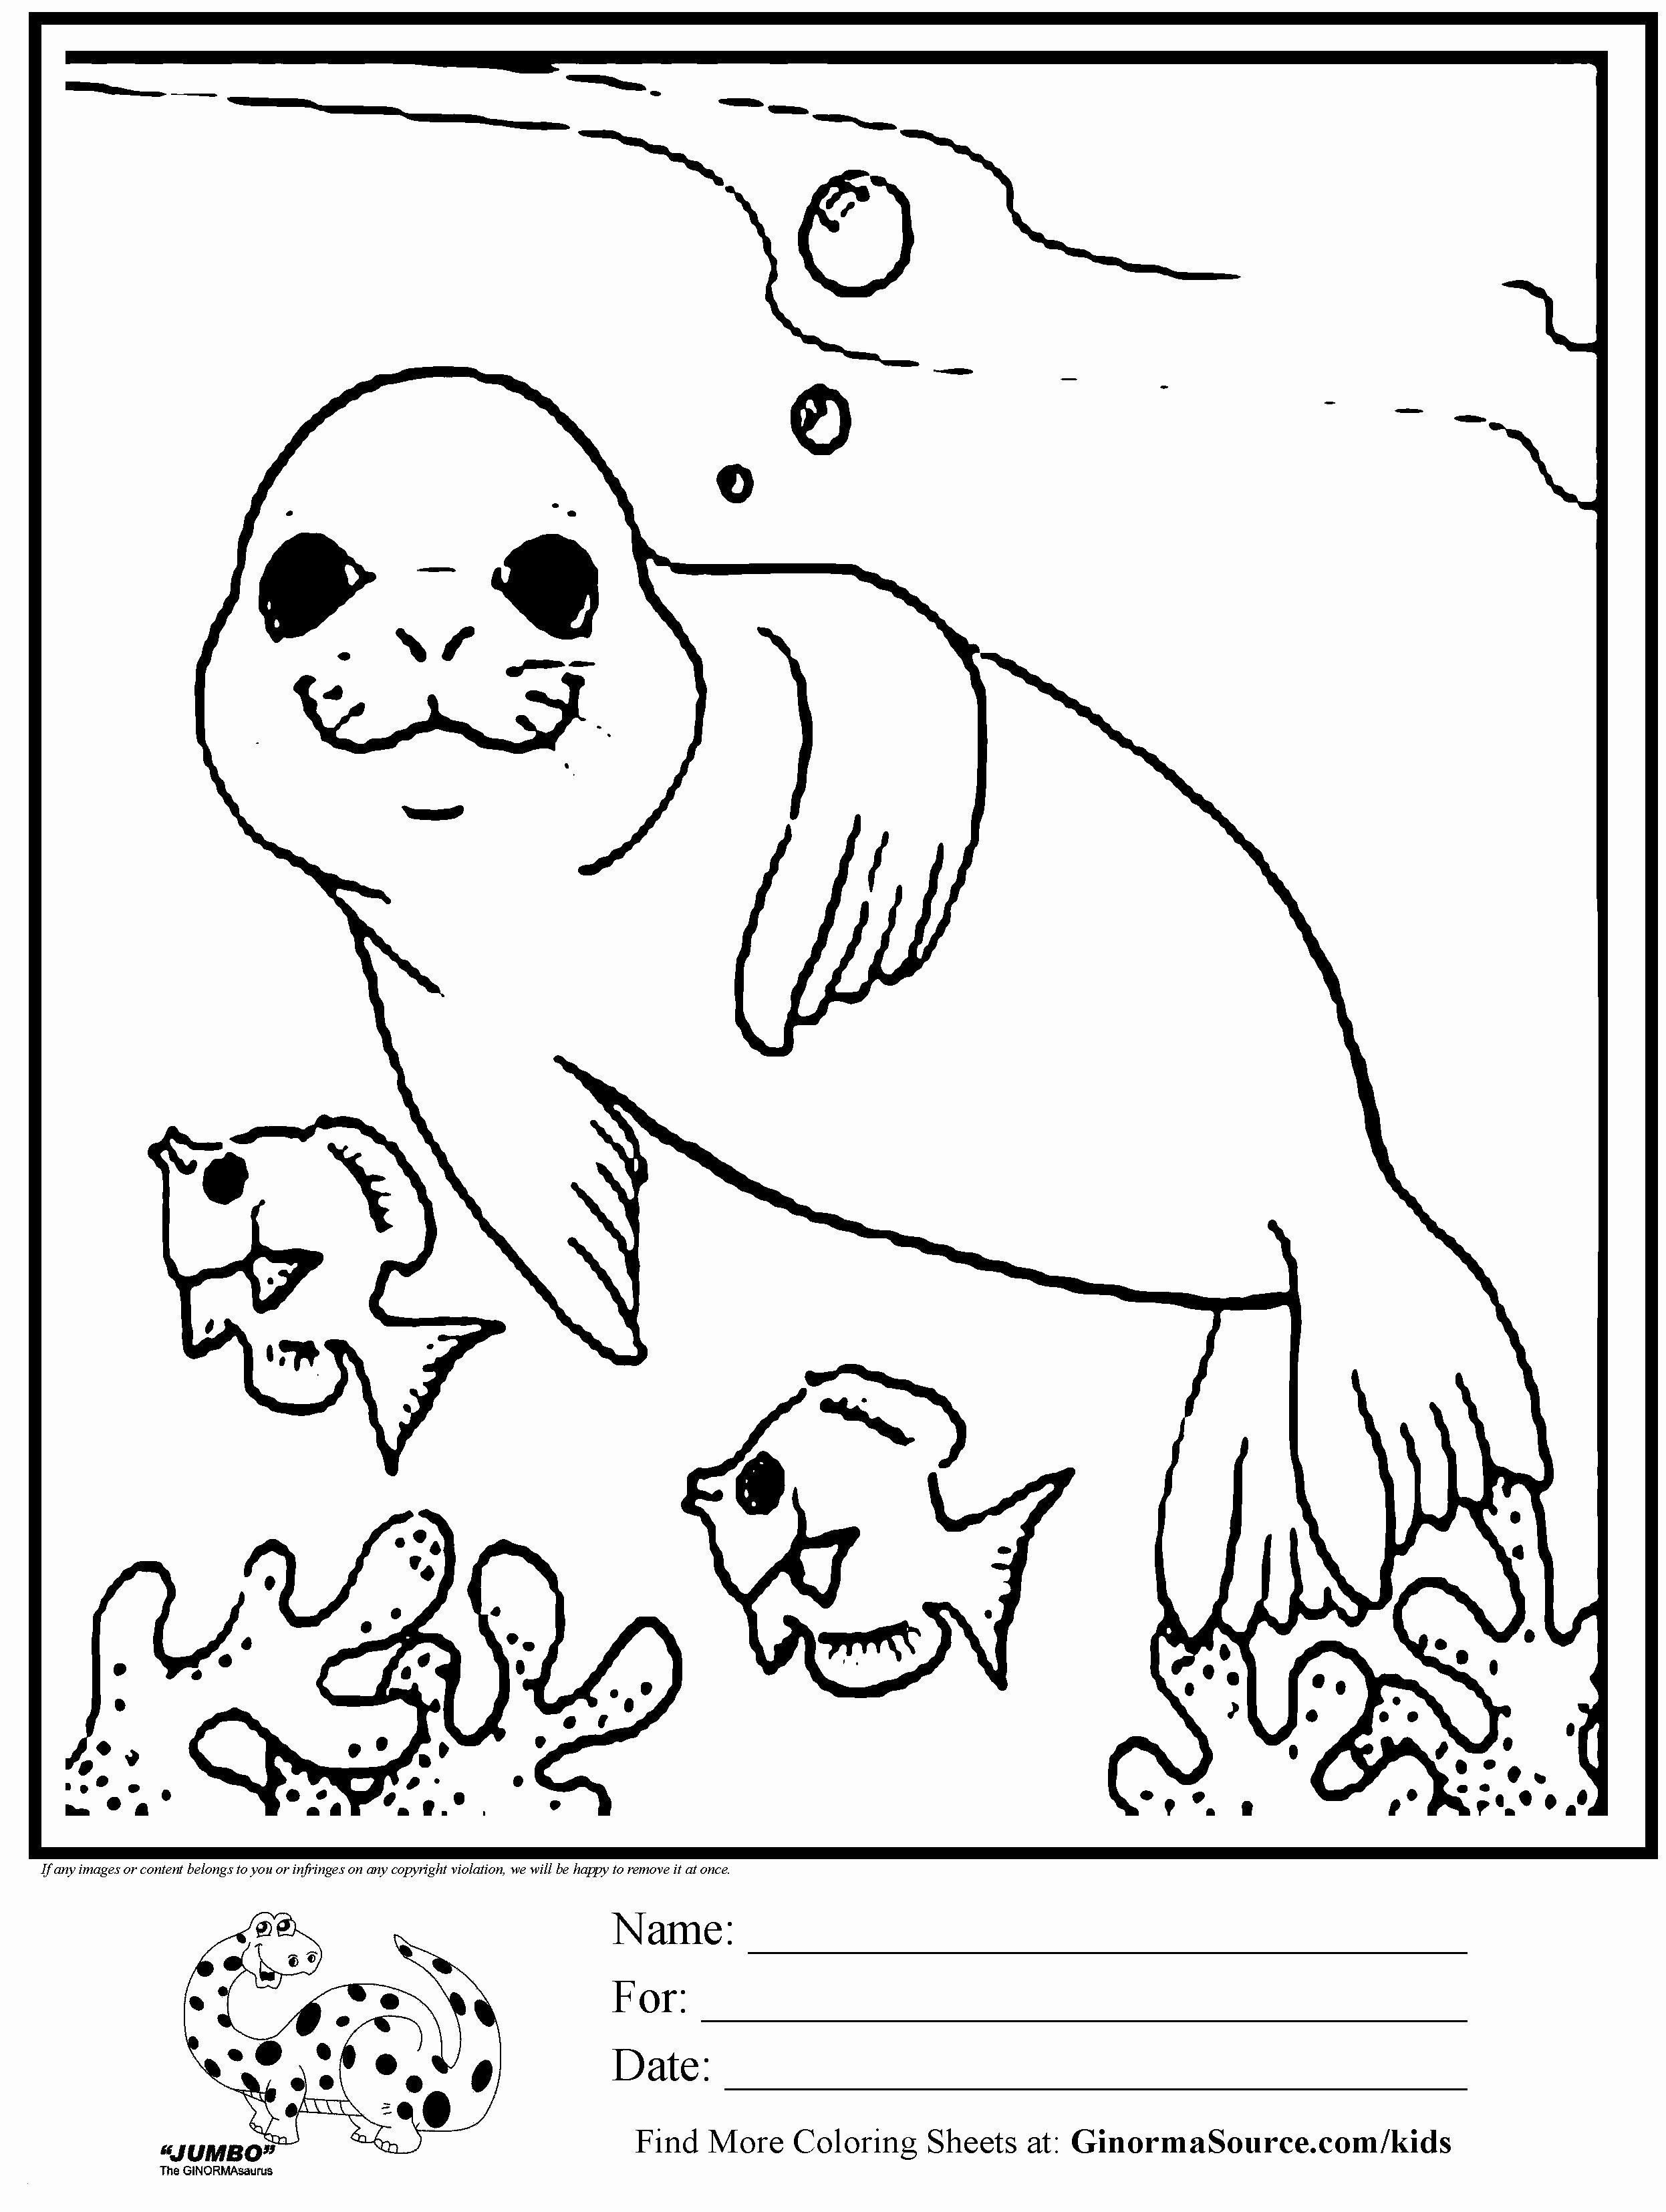 Extinct Animal Coloring Pages Trend